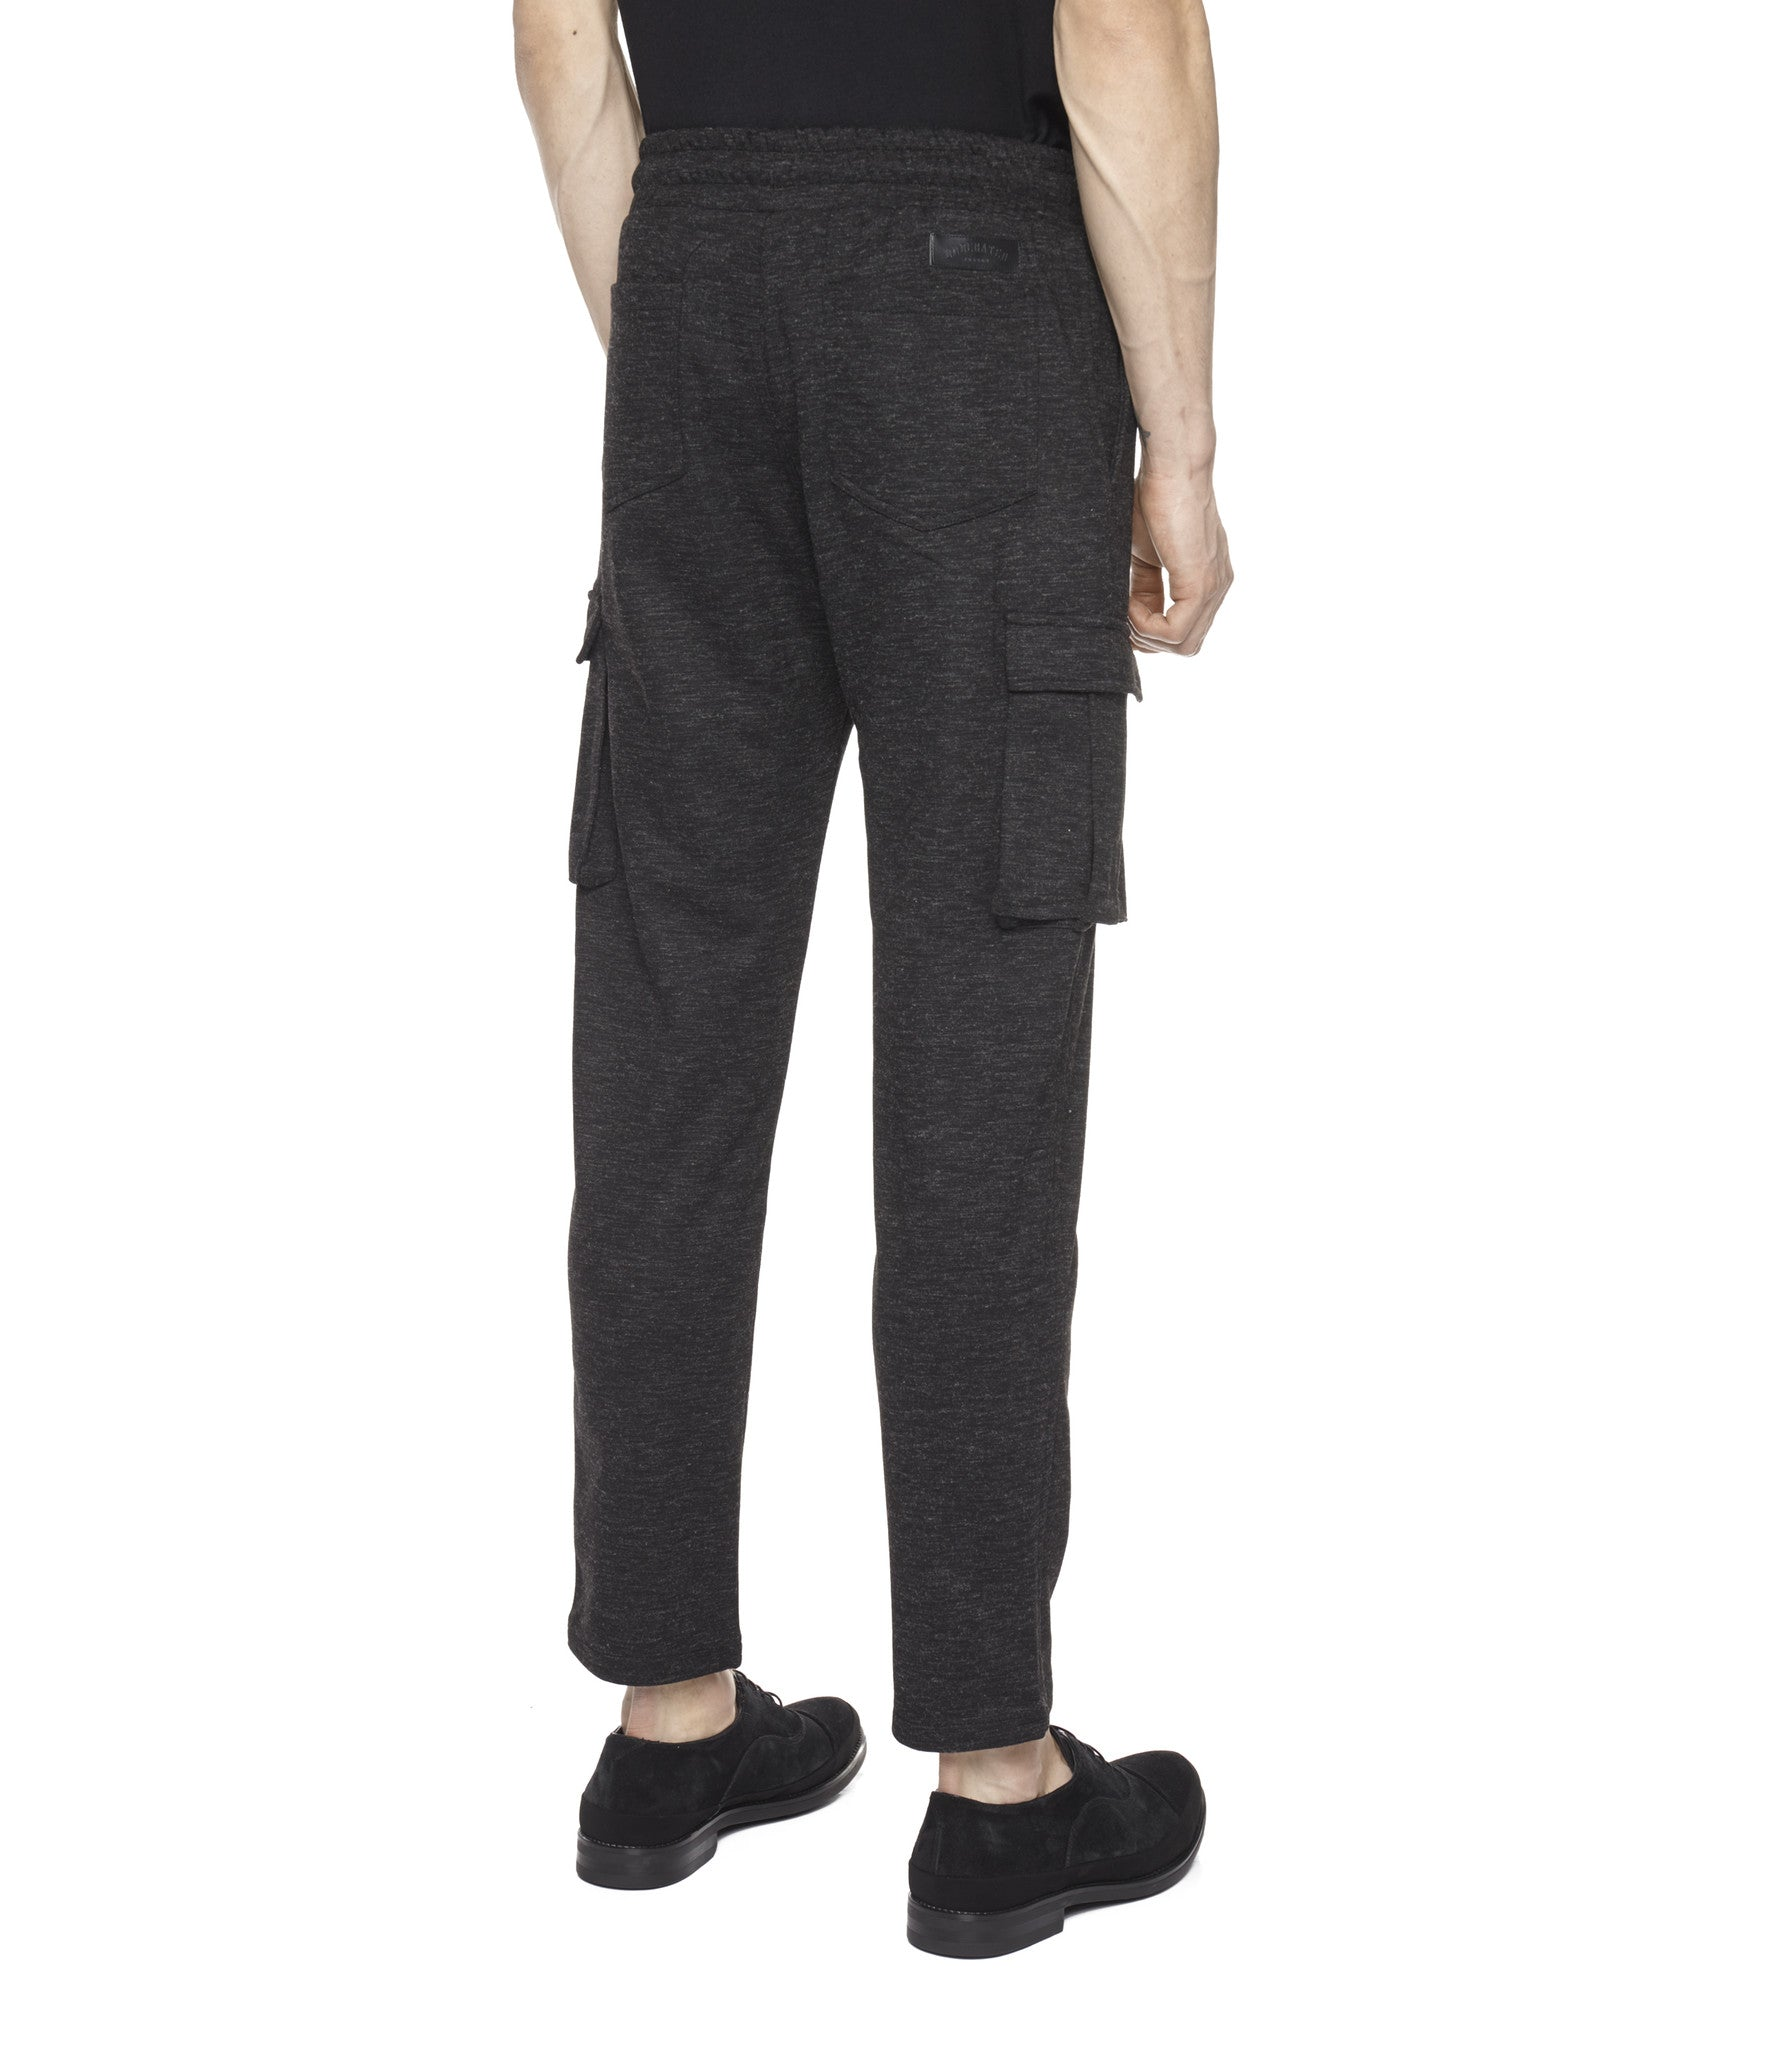 TR253 Wool Blend Cropped Cargo Pants - Black - underated london - underatedco - 5